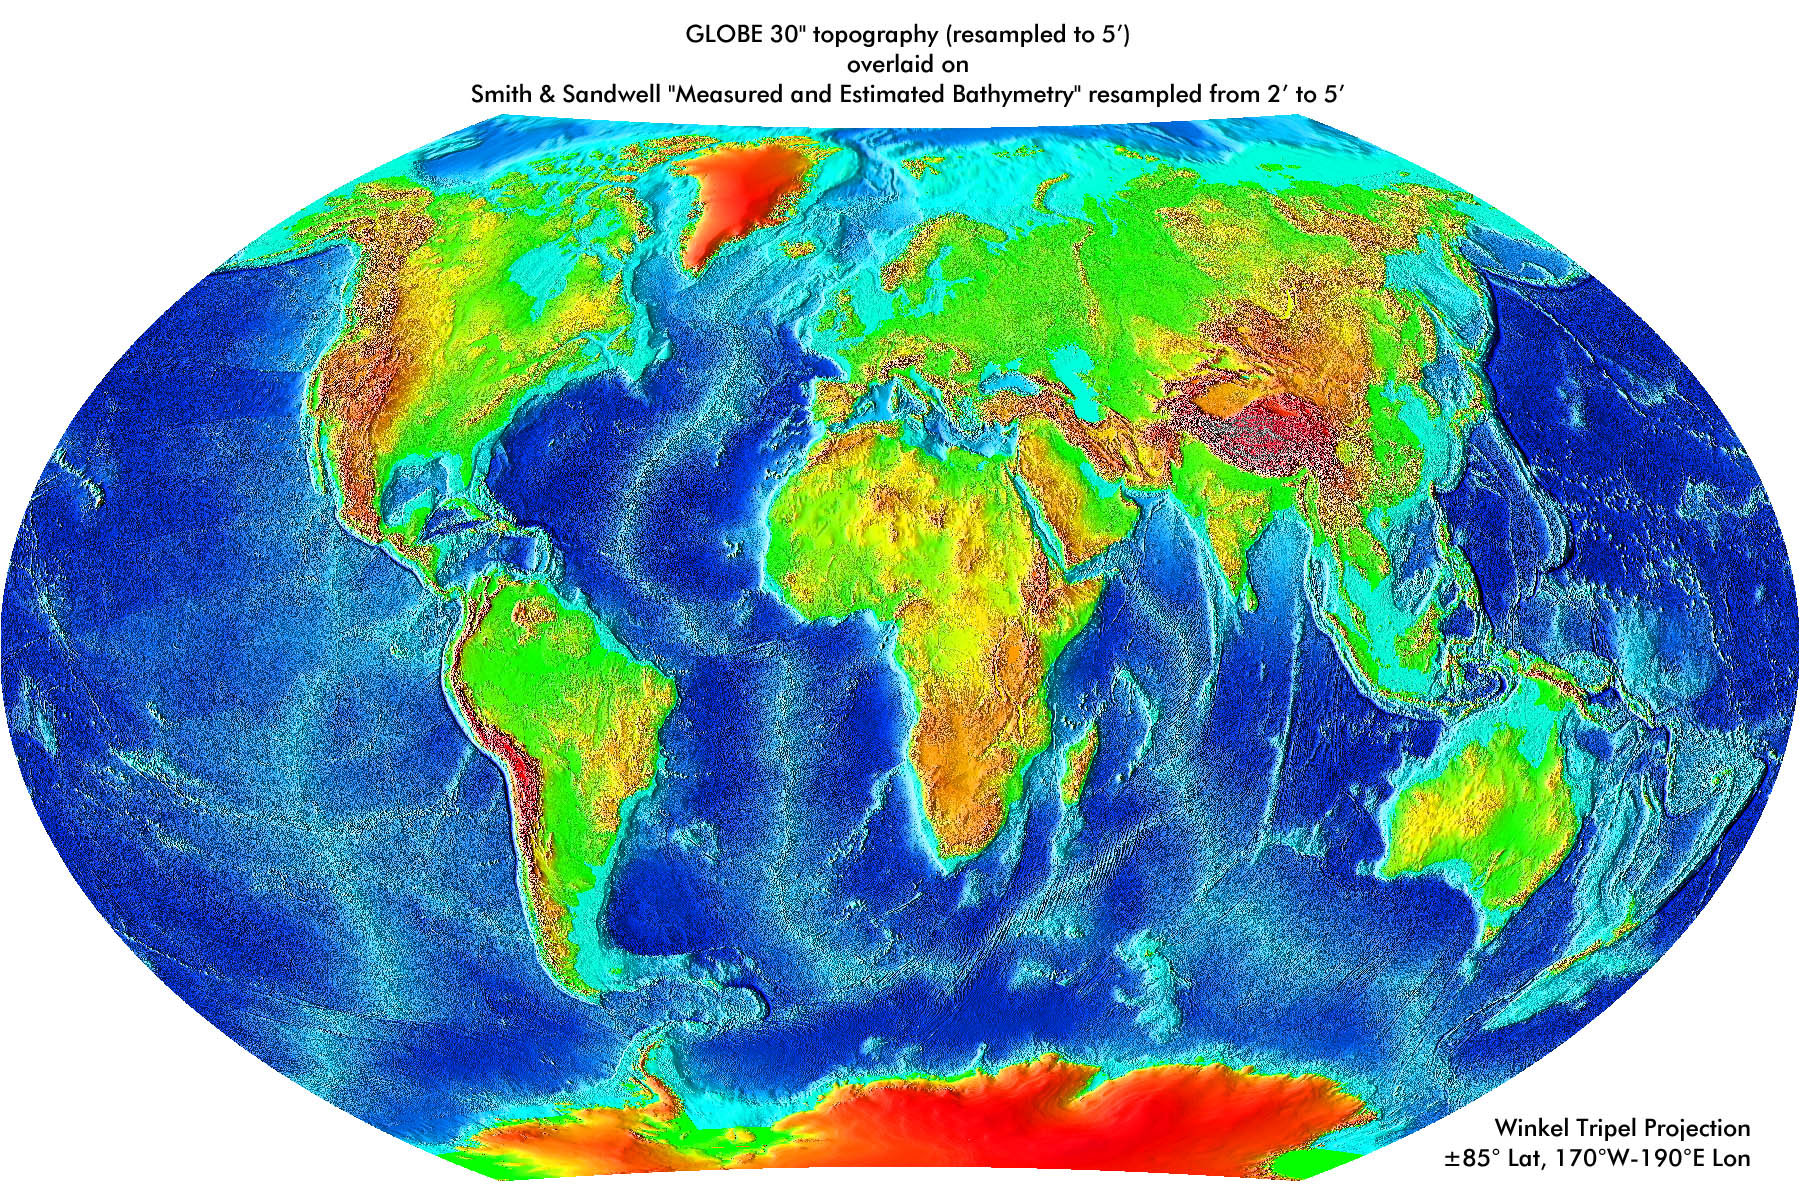 Global Land Onekm Base Elevation Project Gallery Of Images - Topographic map of the world